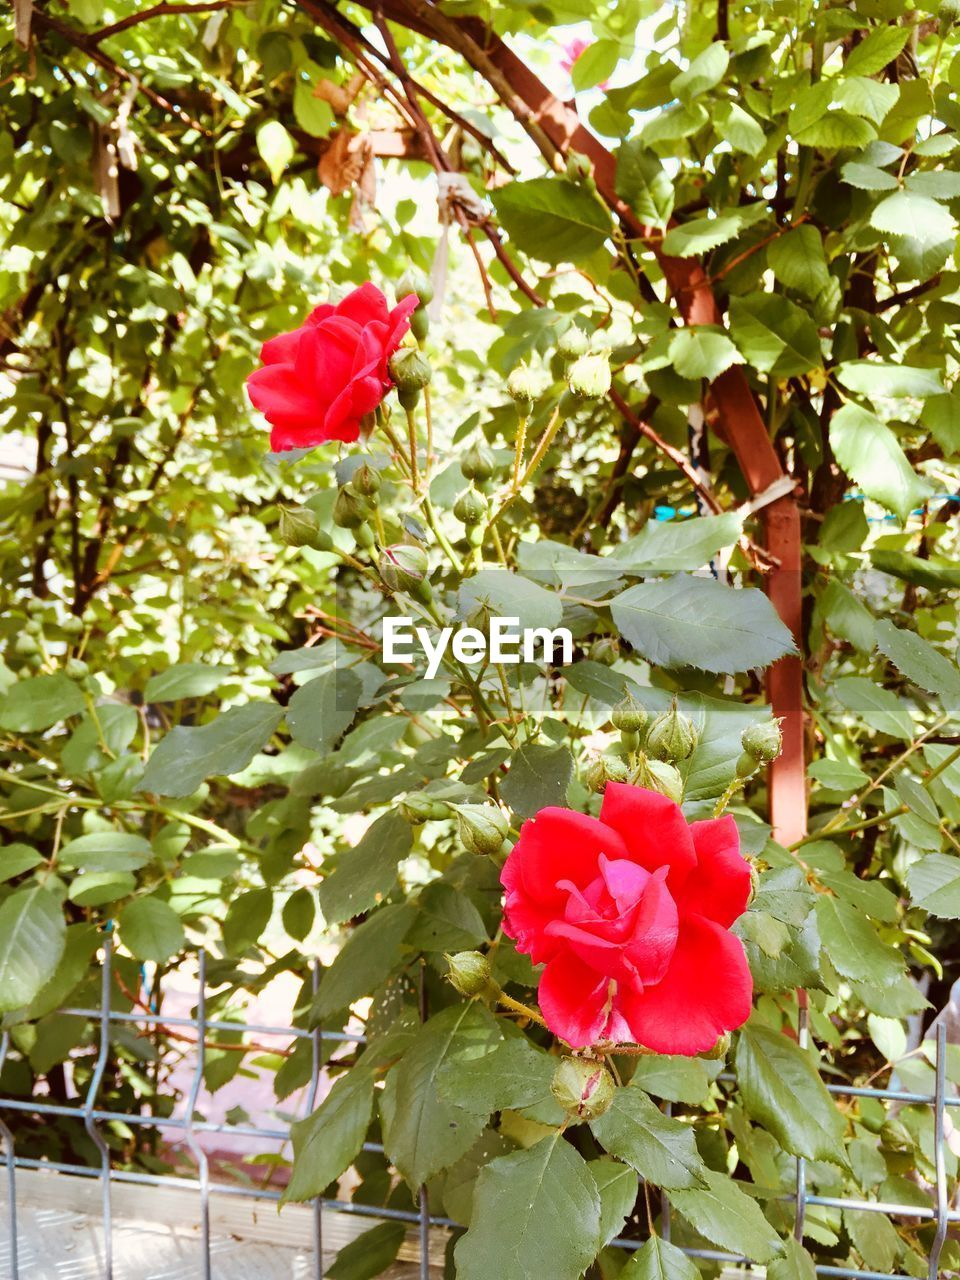 plant, flower, flowering plant, beauty in nature, plant part, leaf, growth, fragility, freshness, vulnerability, red, rose, nature, petal, close-up, pink color, inflorescence, rose - flower, no people, tree, flower head, outdoors, spring